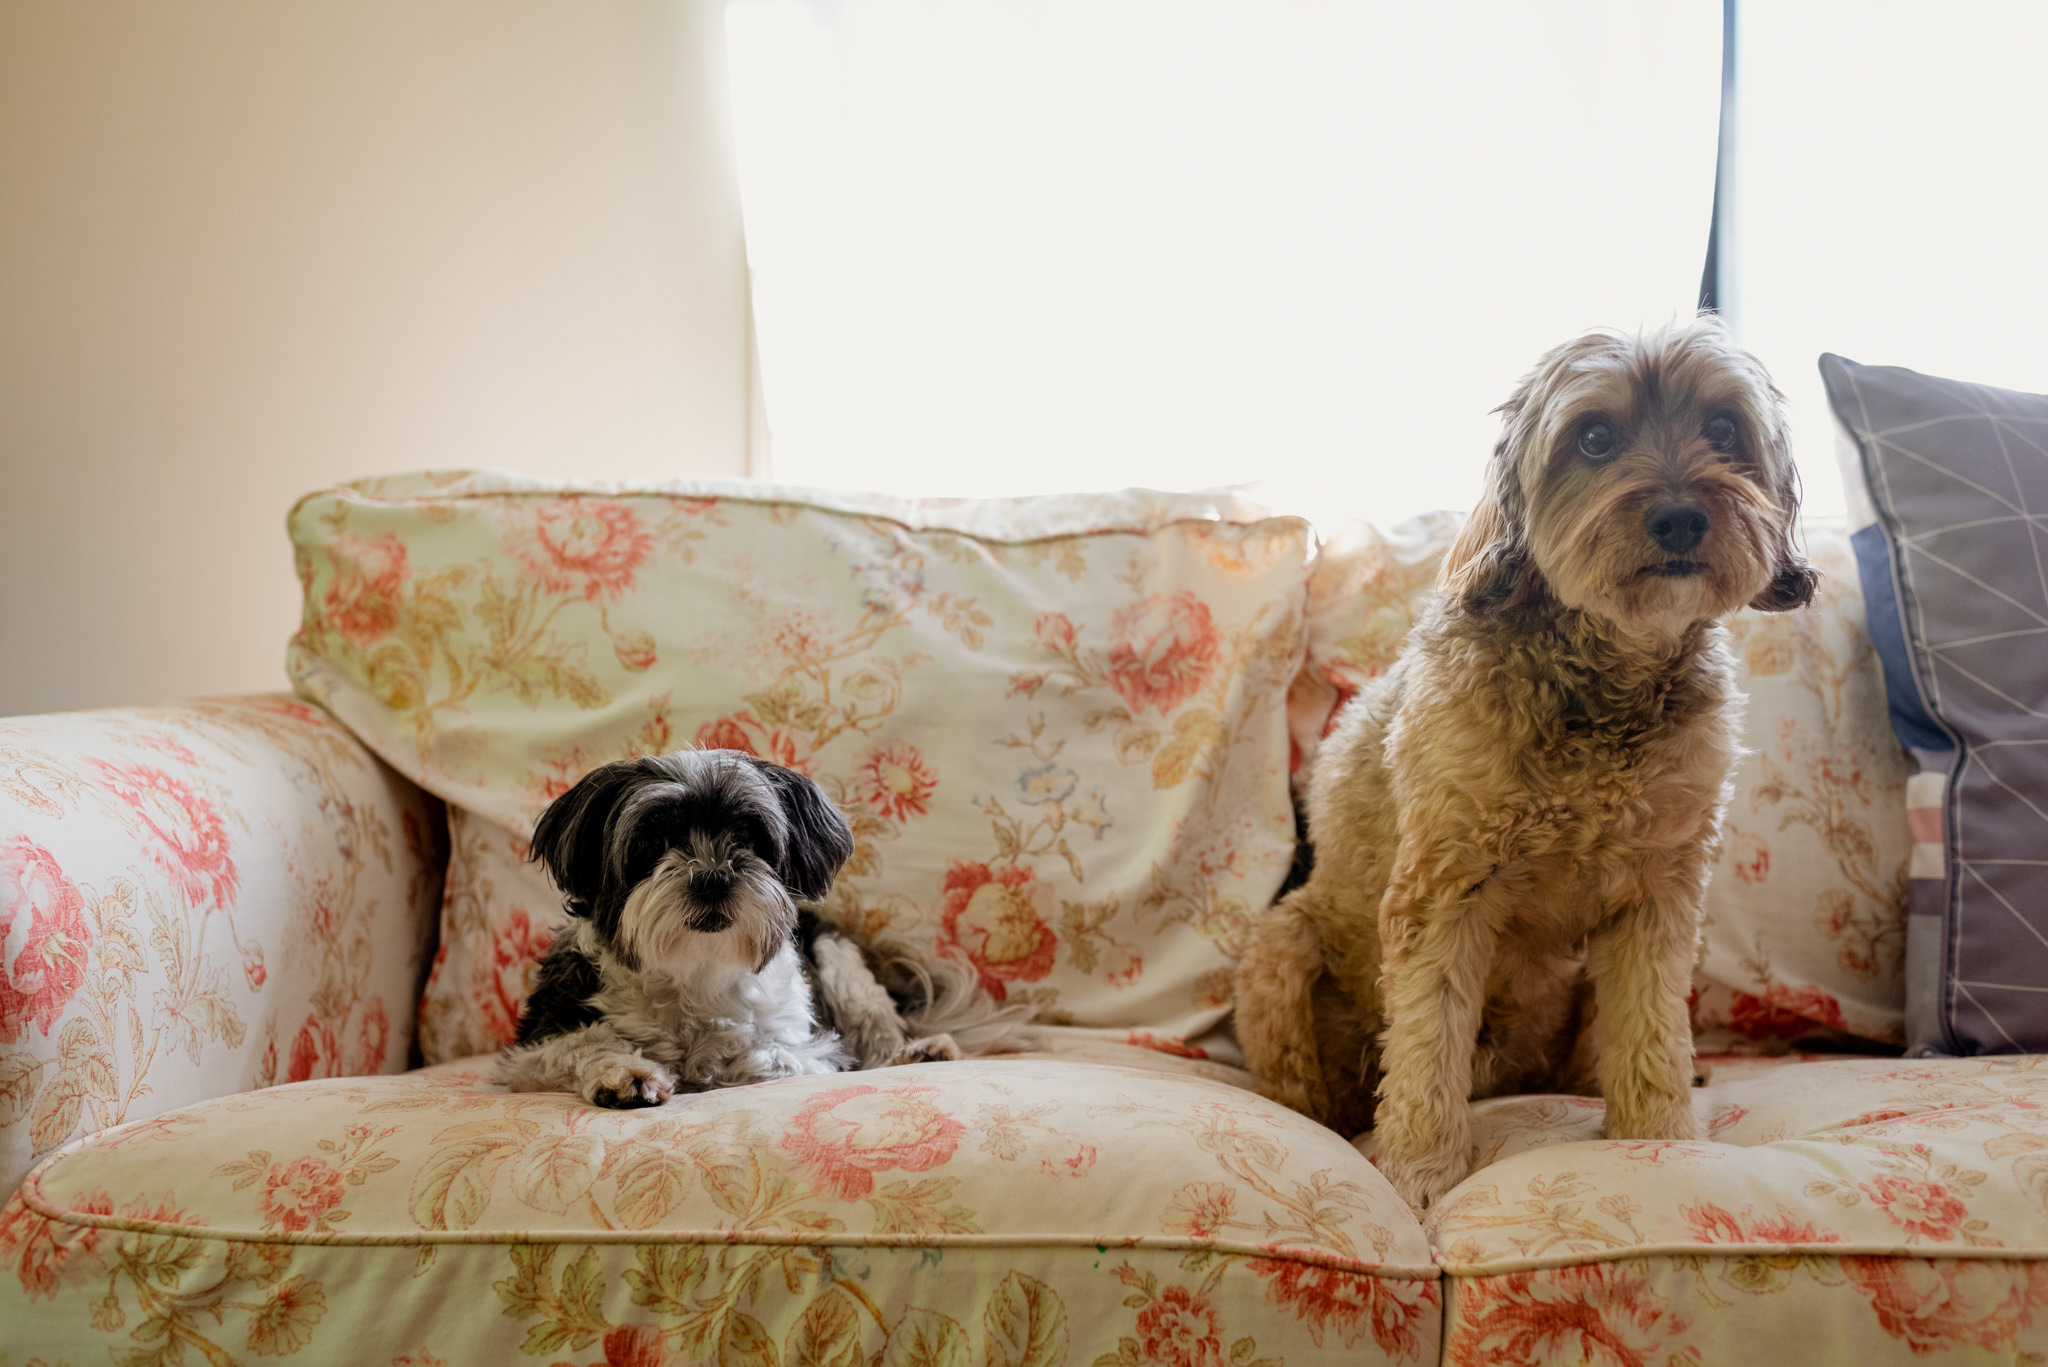 Two small dogs sit on a flower patterned couch